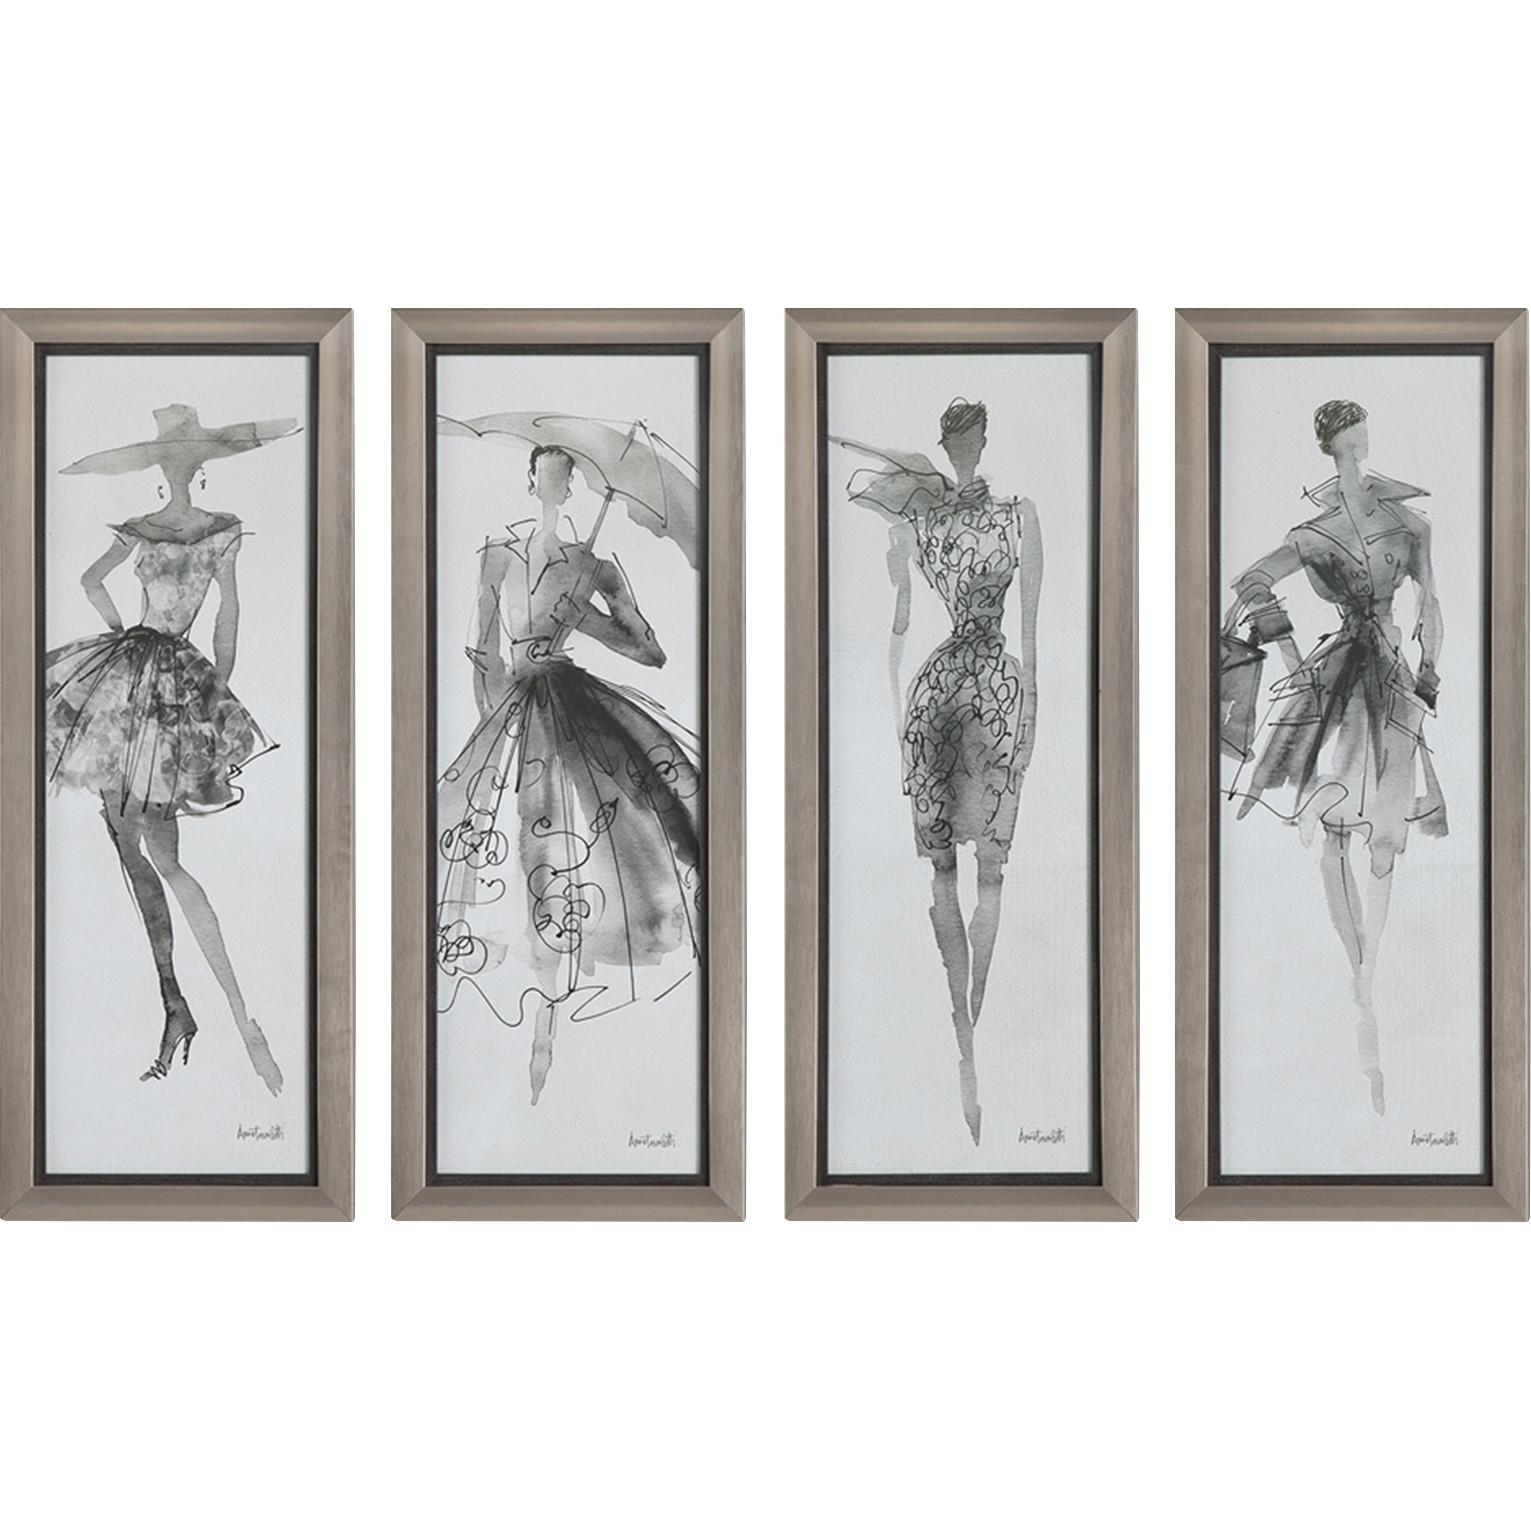 Wall Art: Amusing 4 Piece Artwork 4 Piece Canvas Wall Art Sets, 4 Pertaining To 4 Piece Wall Art (Image 17 of 19)